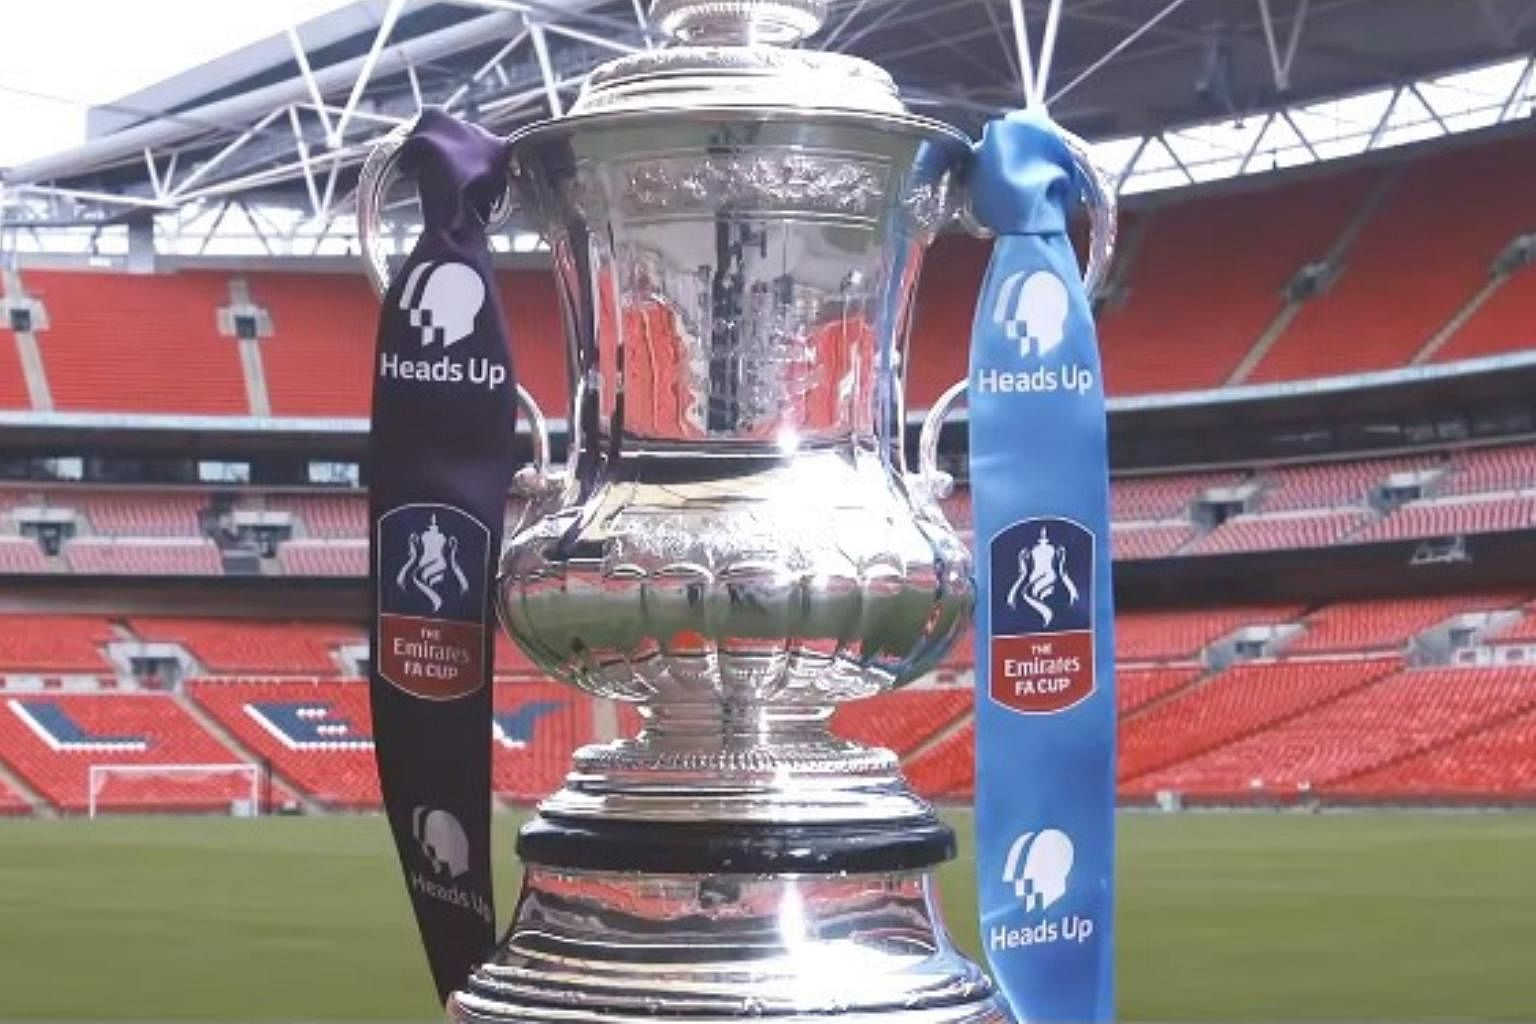 Football English Fa Cup Final To Be Renamed In Honour Of Heads Up Campaign Football News Top Stories The Straits Times